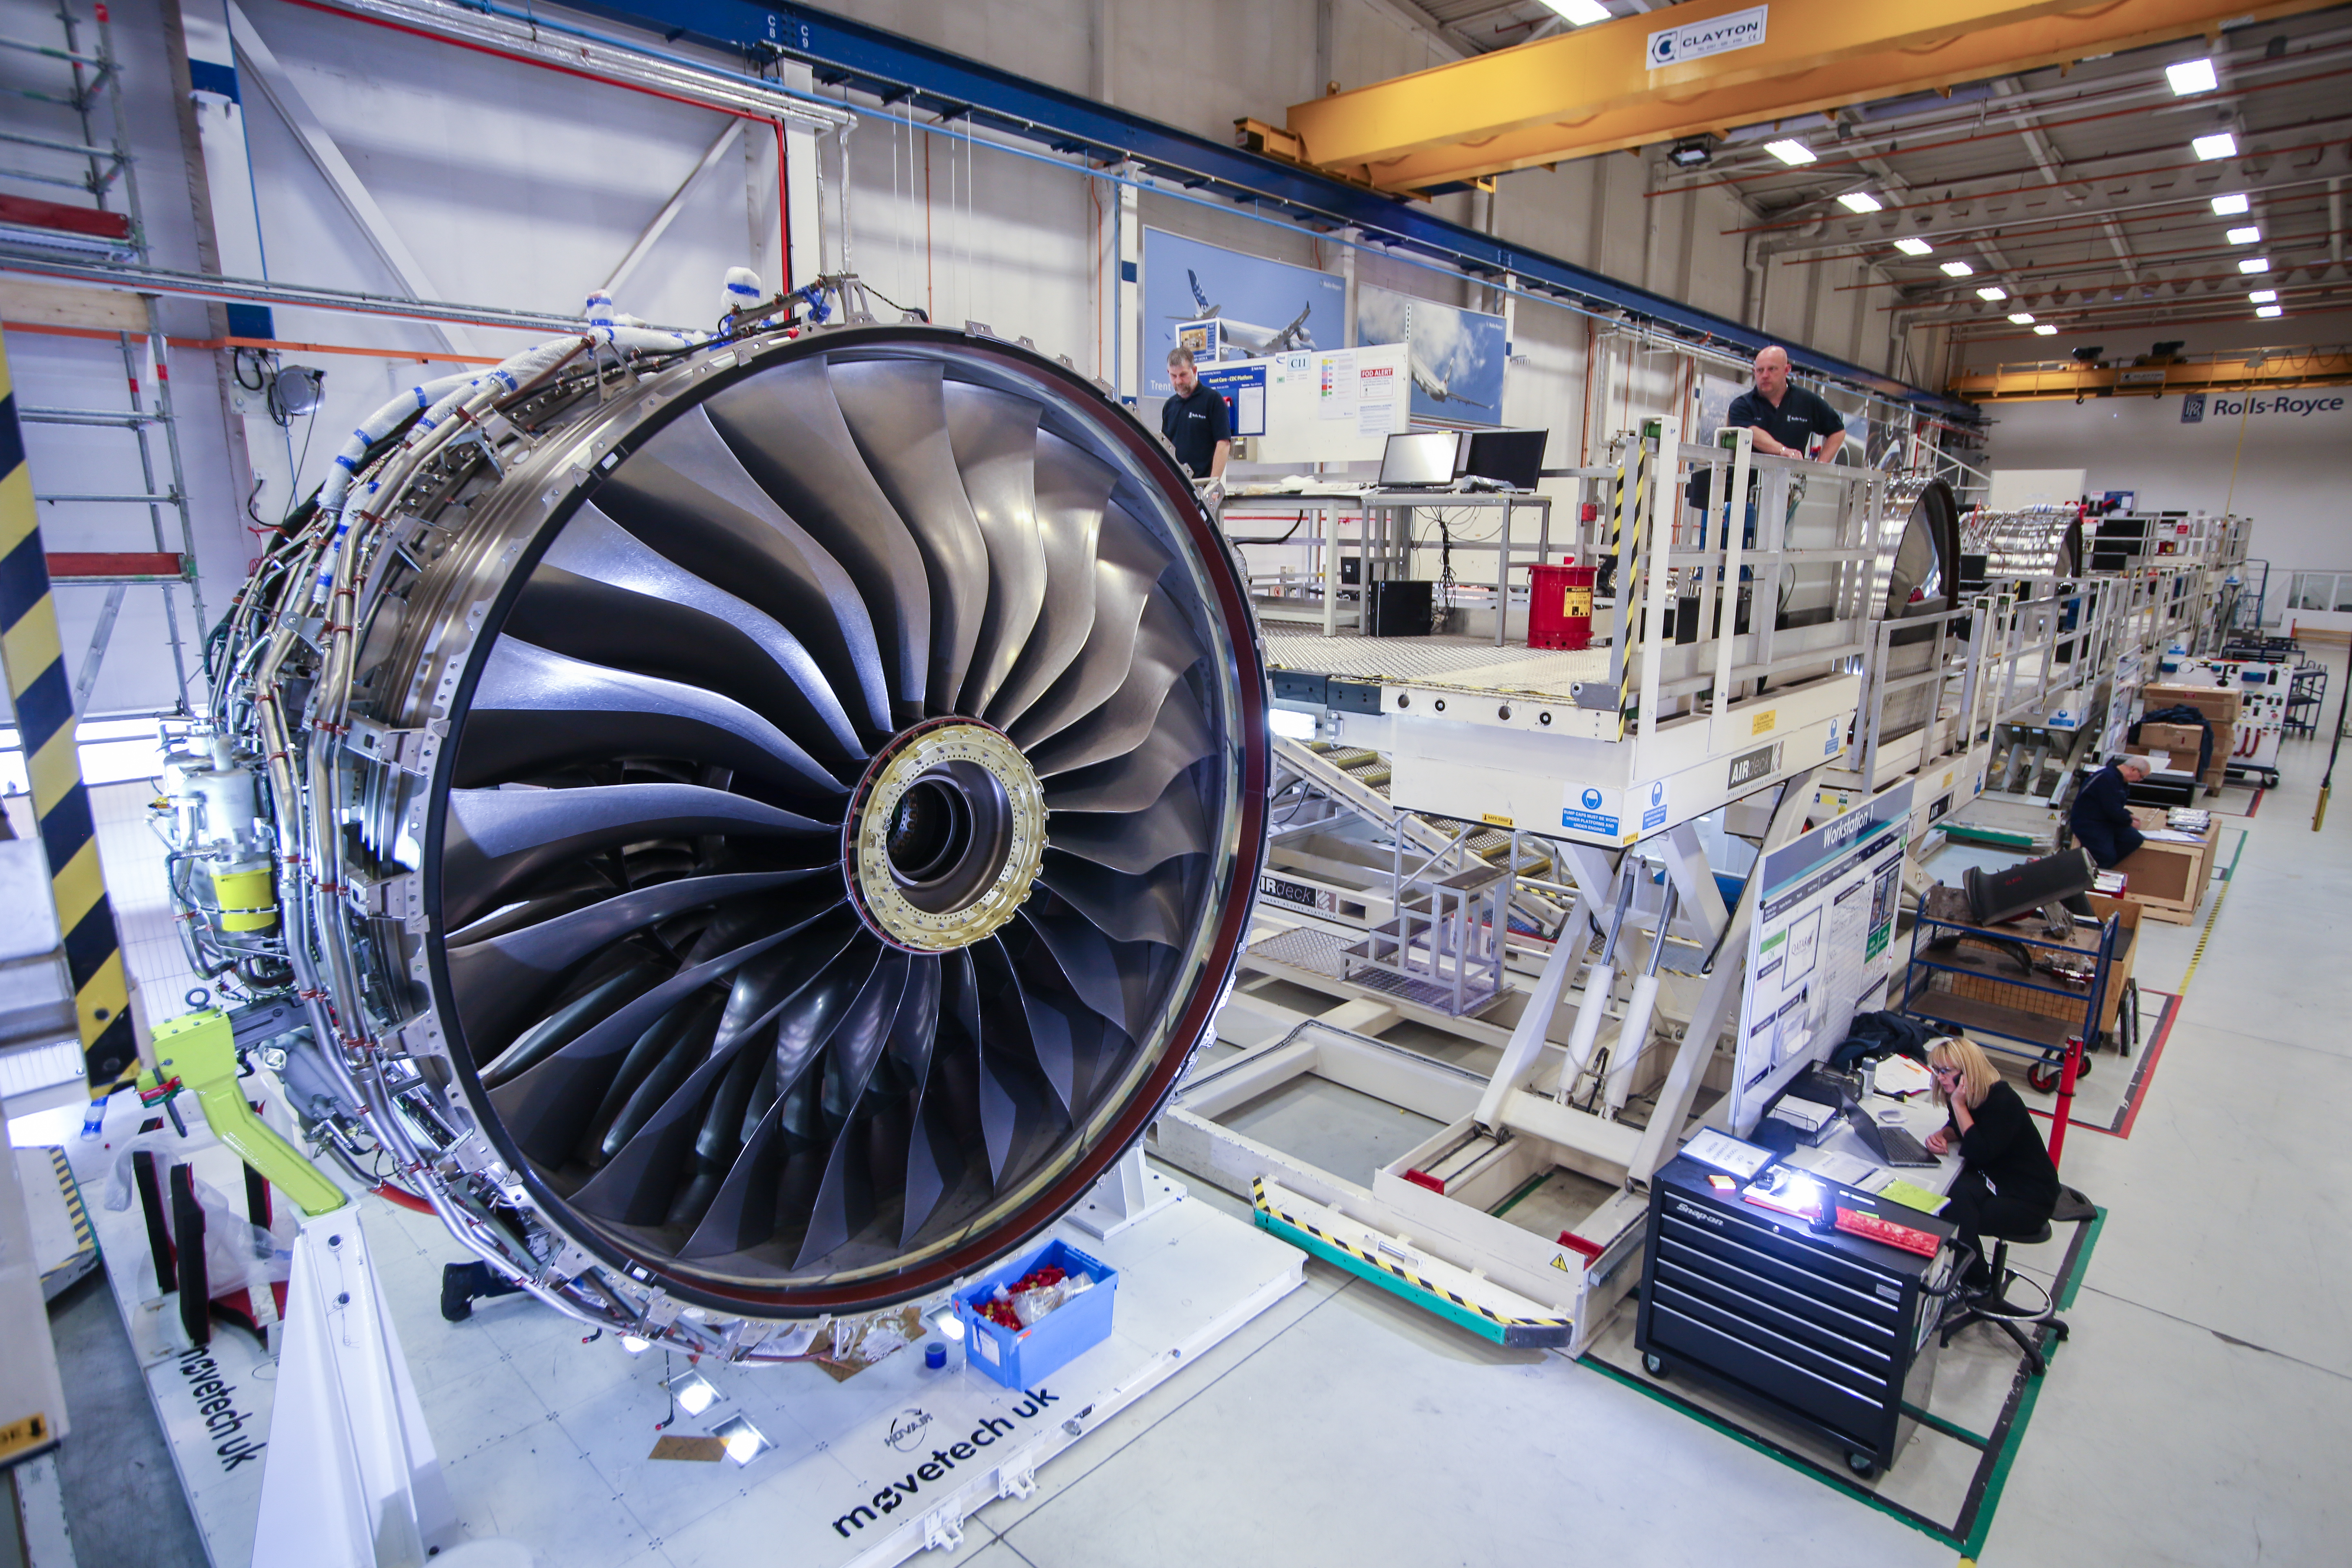 Rolls Royce India could still cooperate on jet engine tech